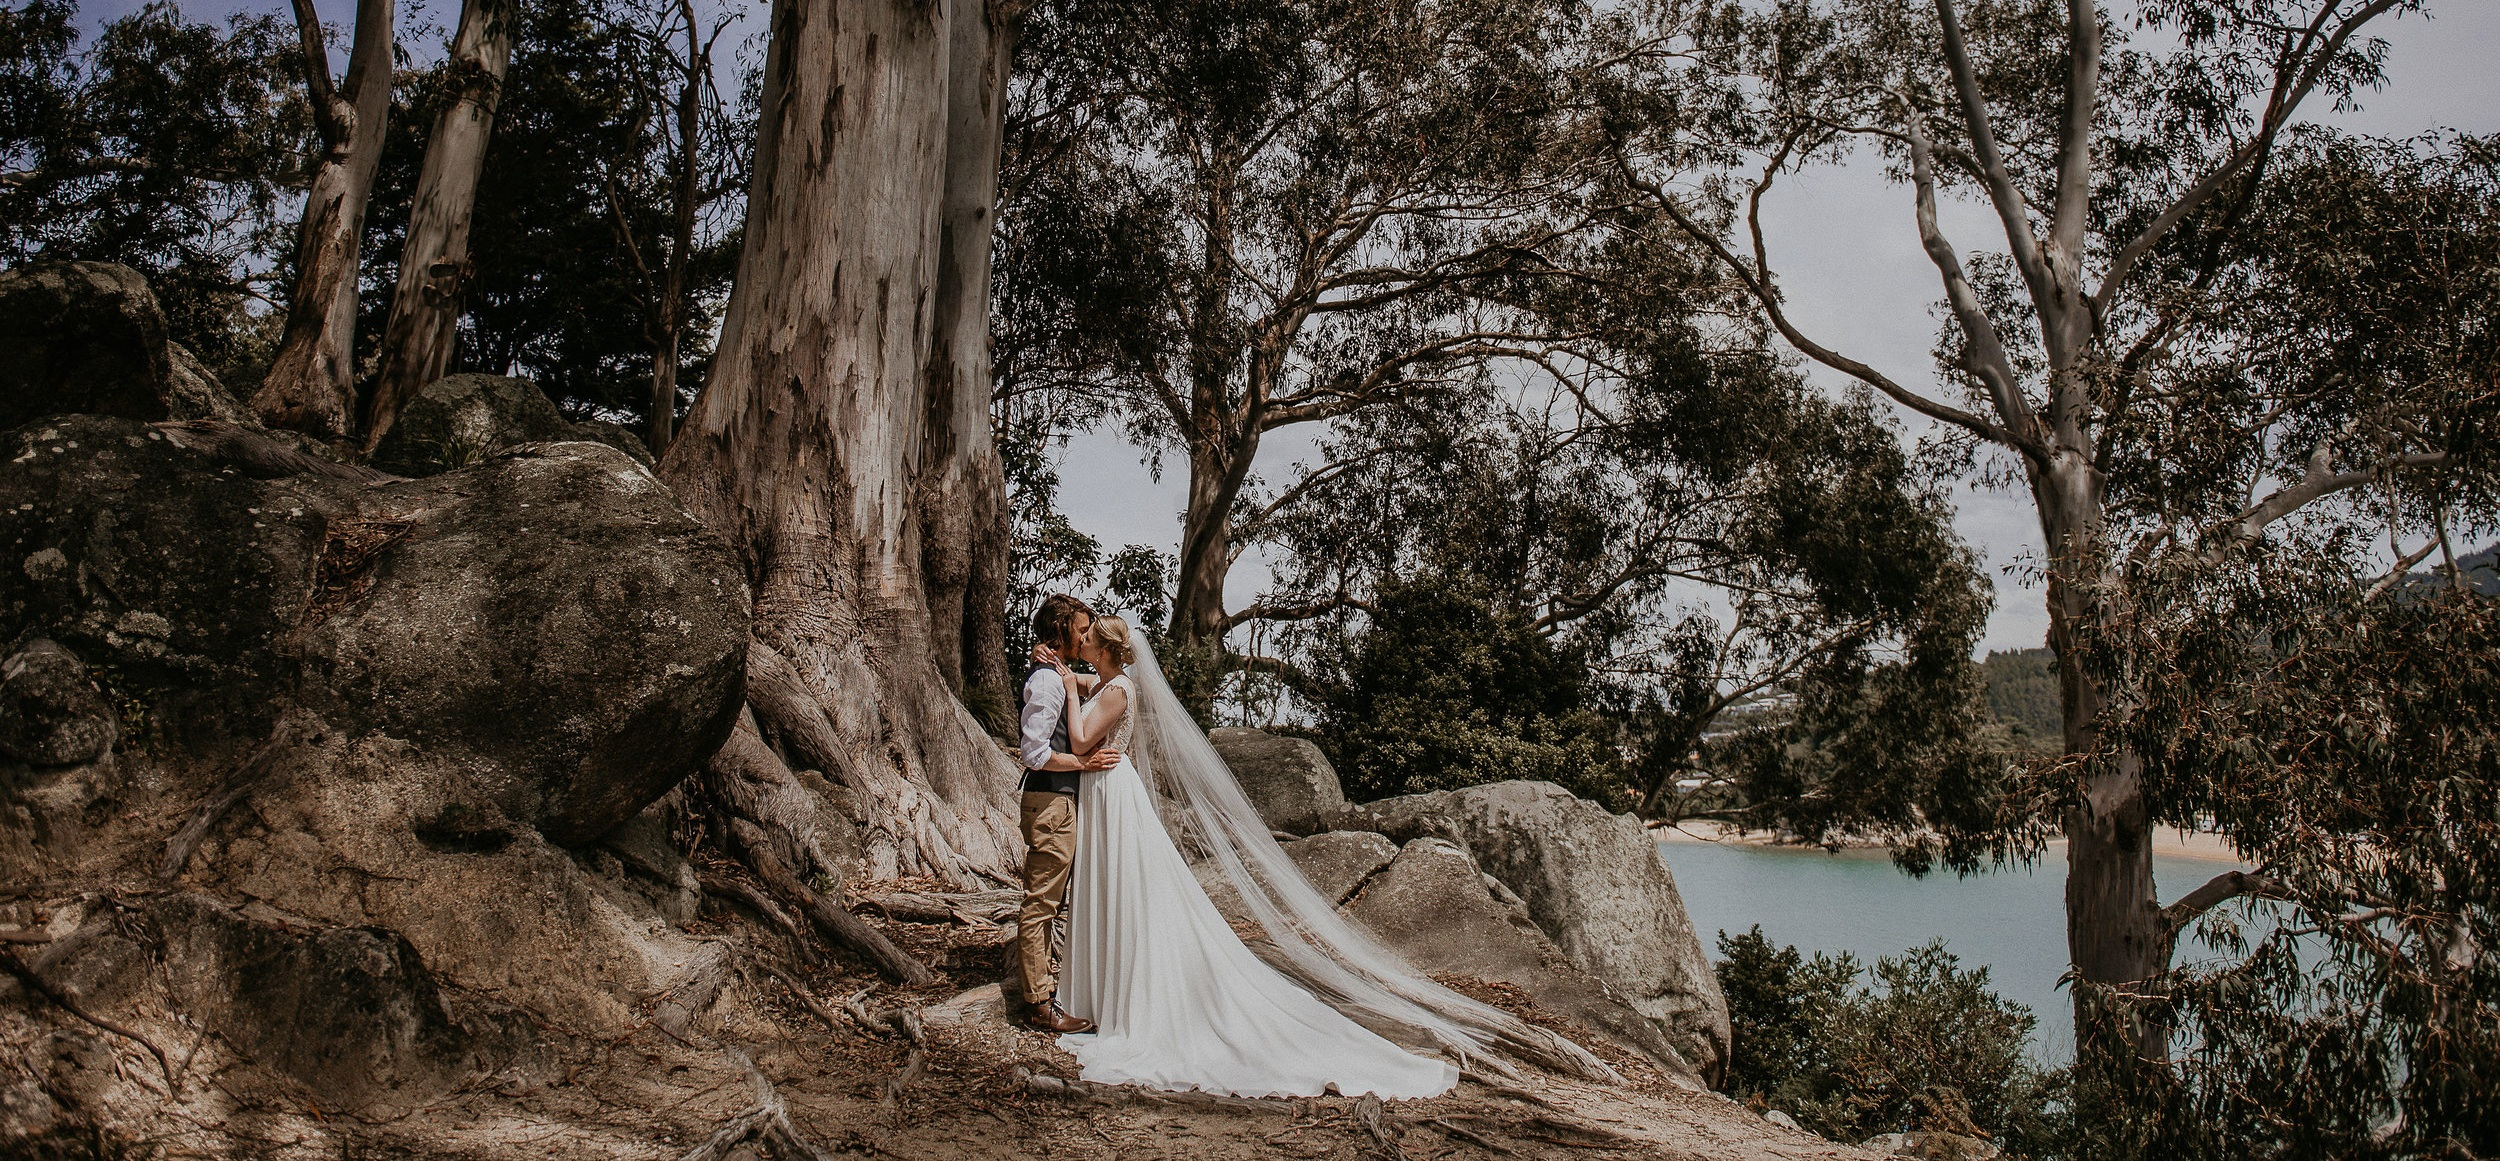 Melissa + Lachlan - The Granary at Founders Park - Nelson, New Zealand